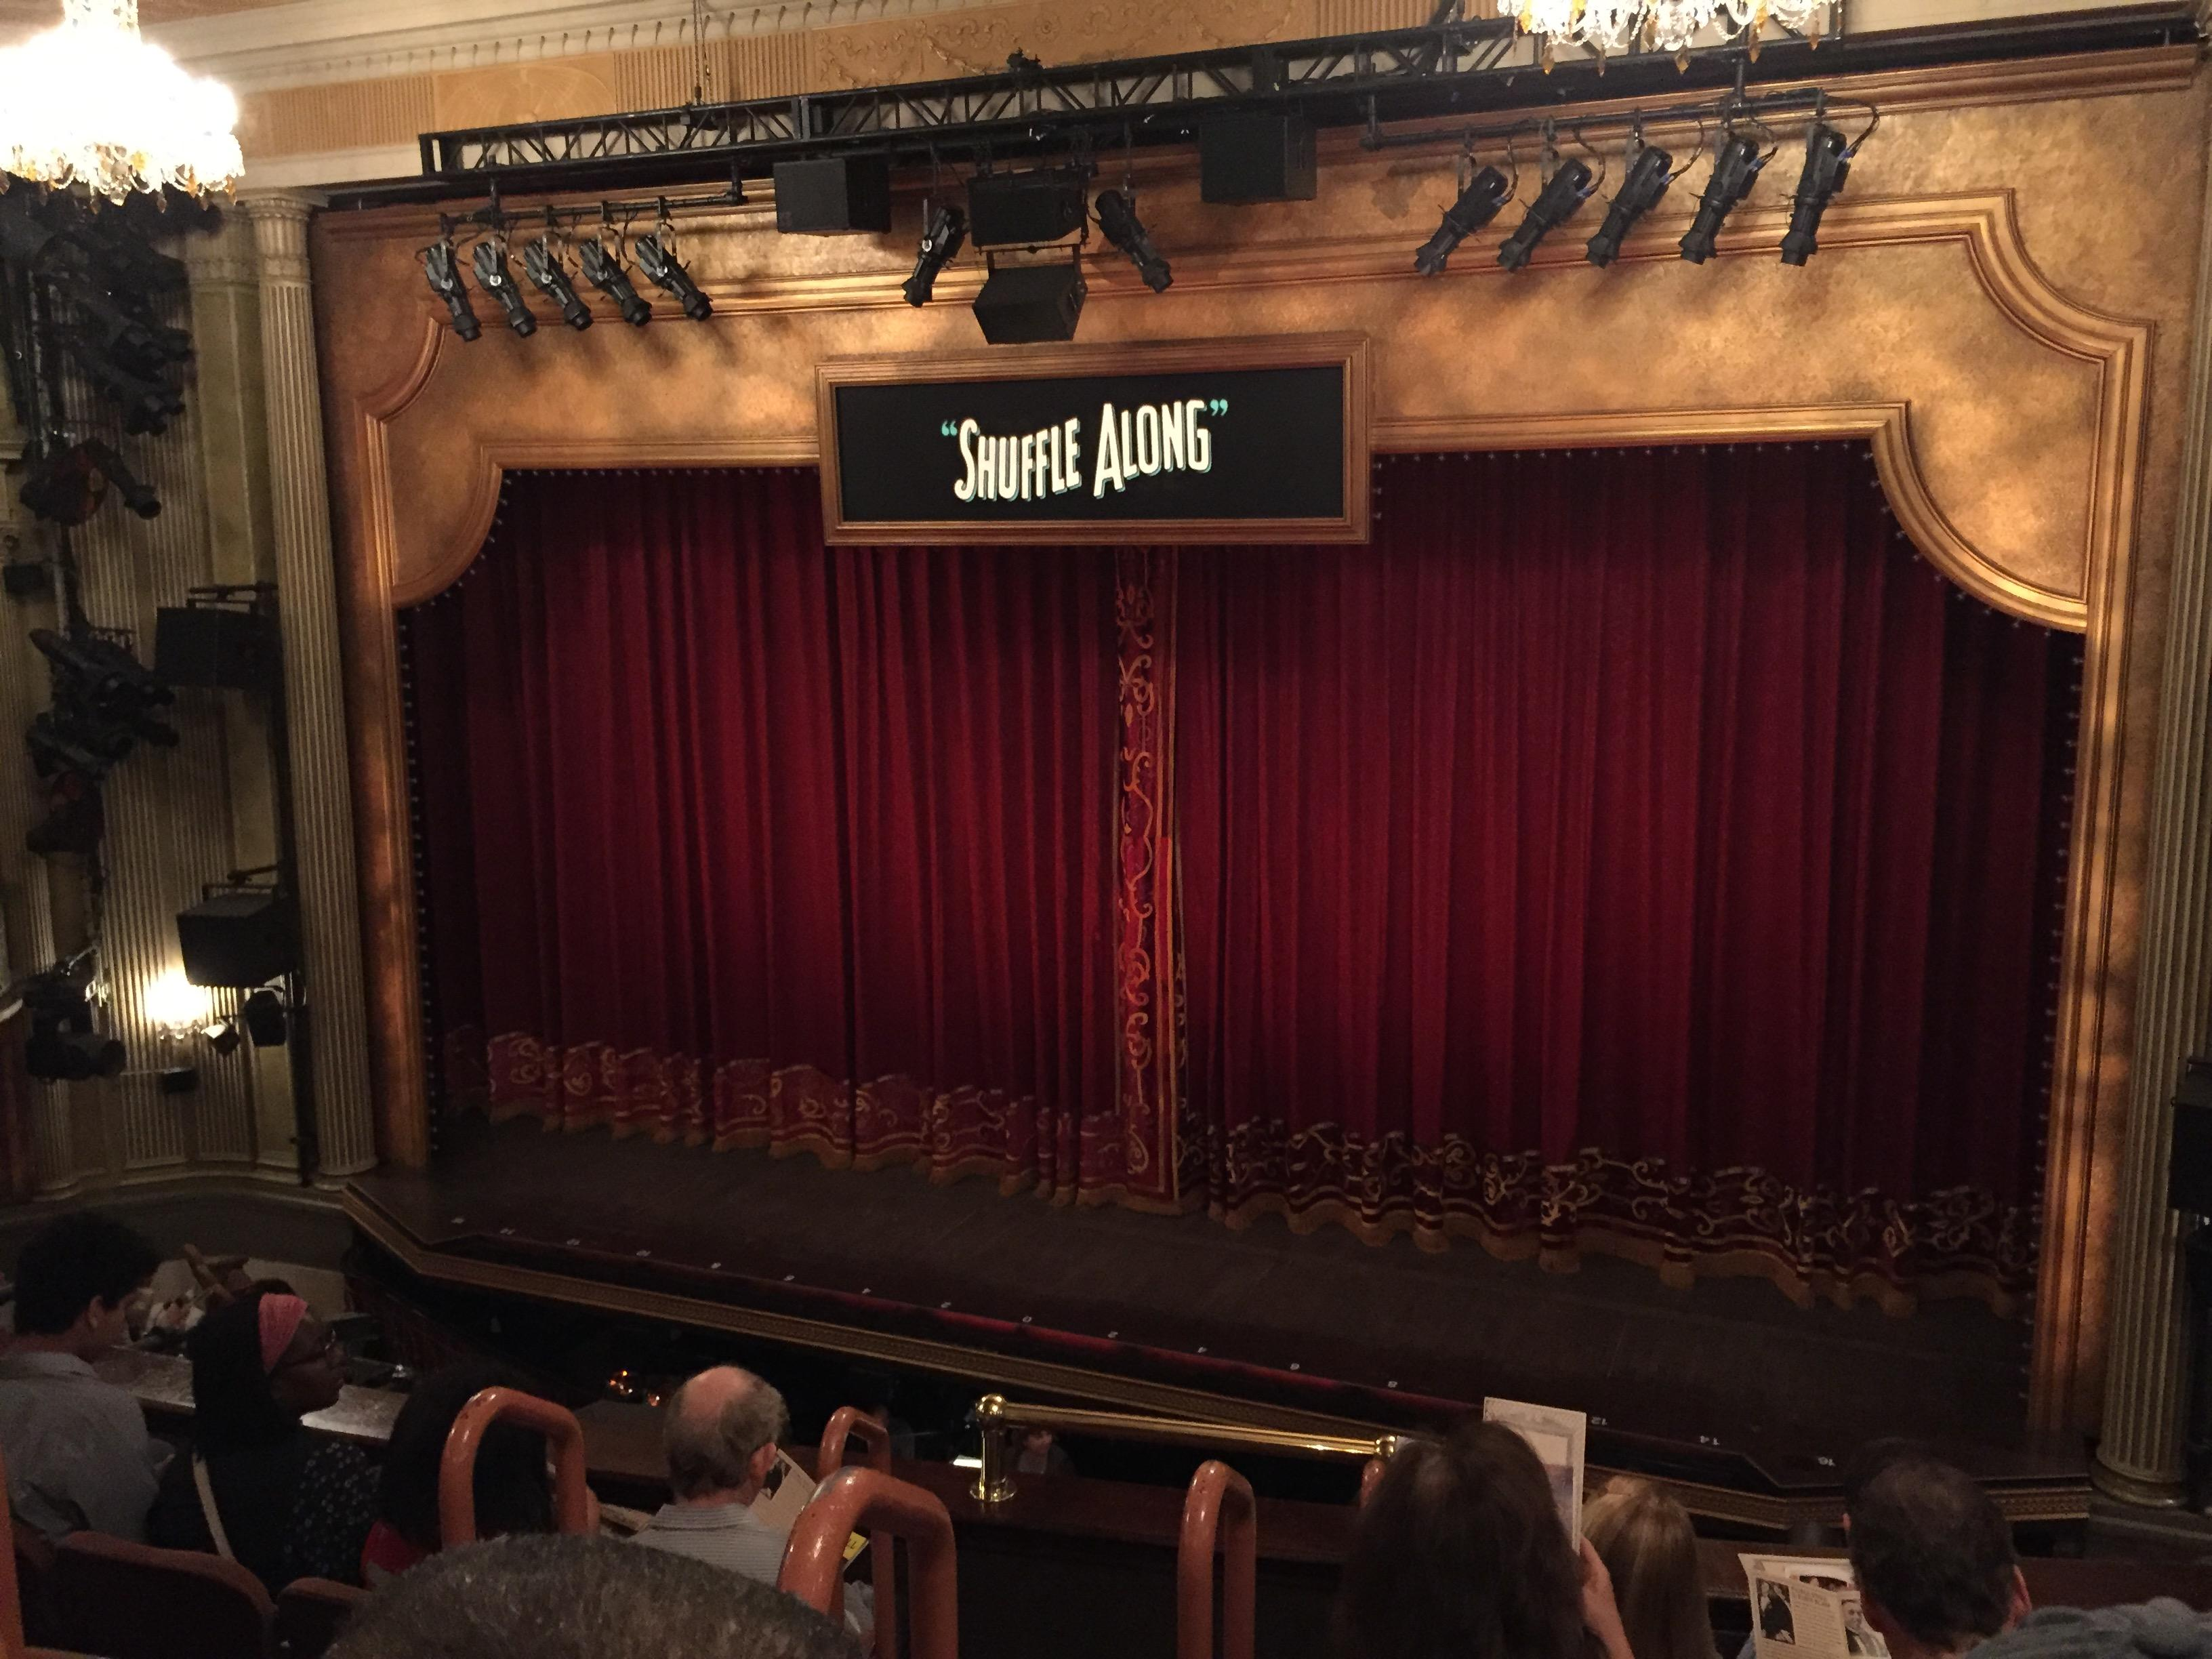 Music Box Theatre Section Mezzanine R Row E Seat 4